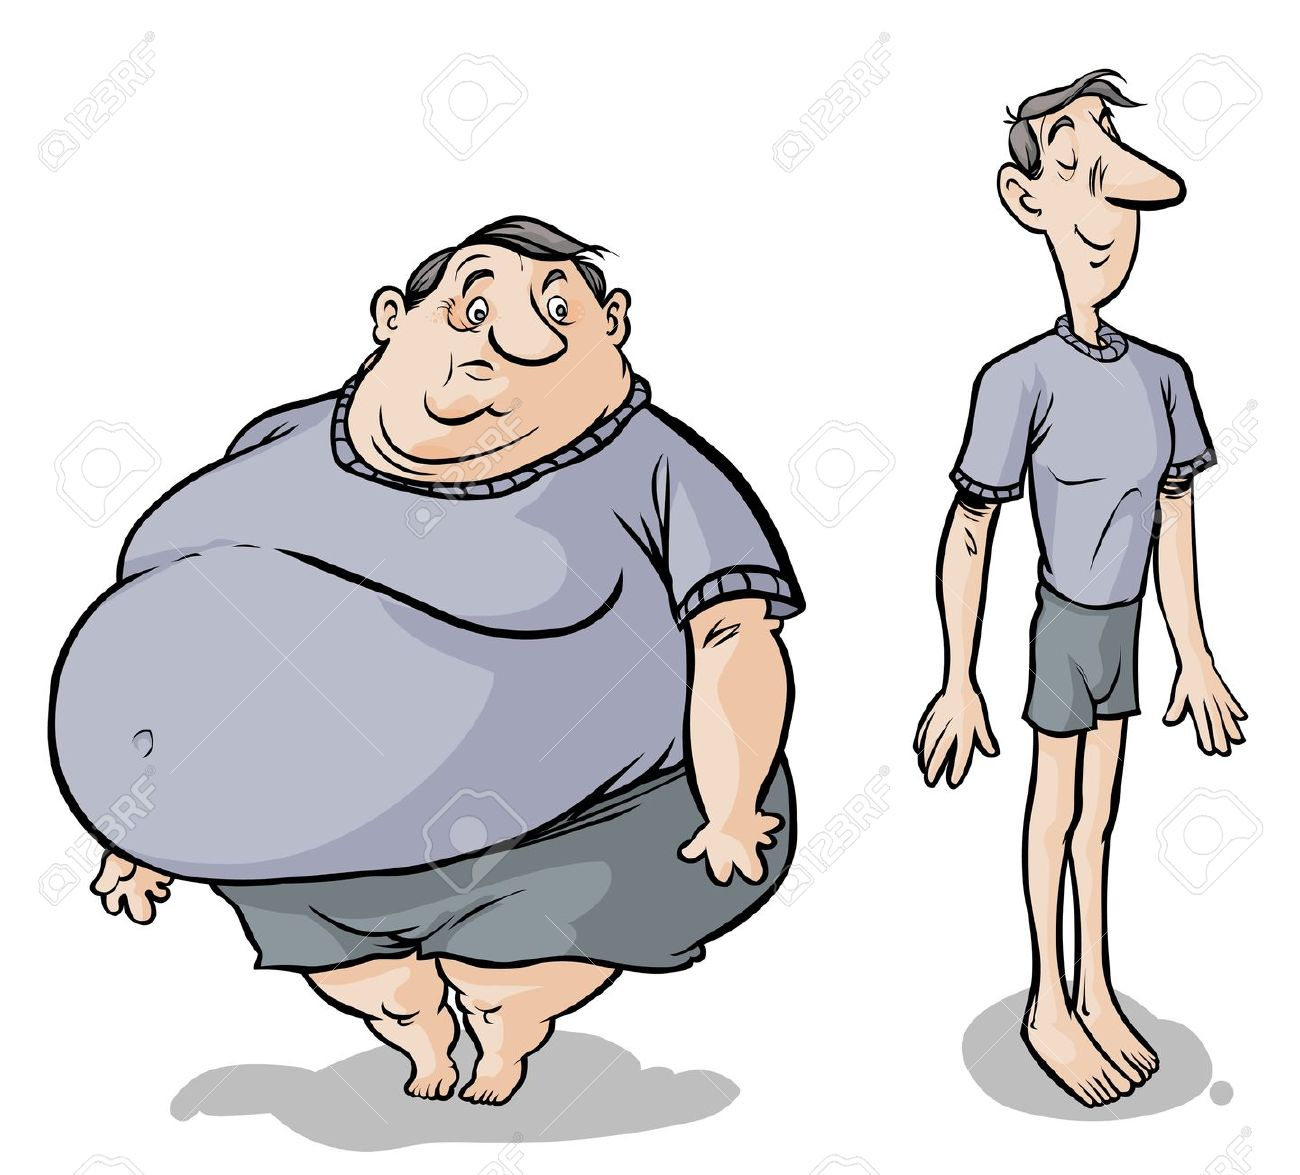 Fat and thin clipart image library stock Fat thin clipart - ClipartFest image library stock